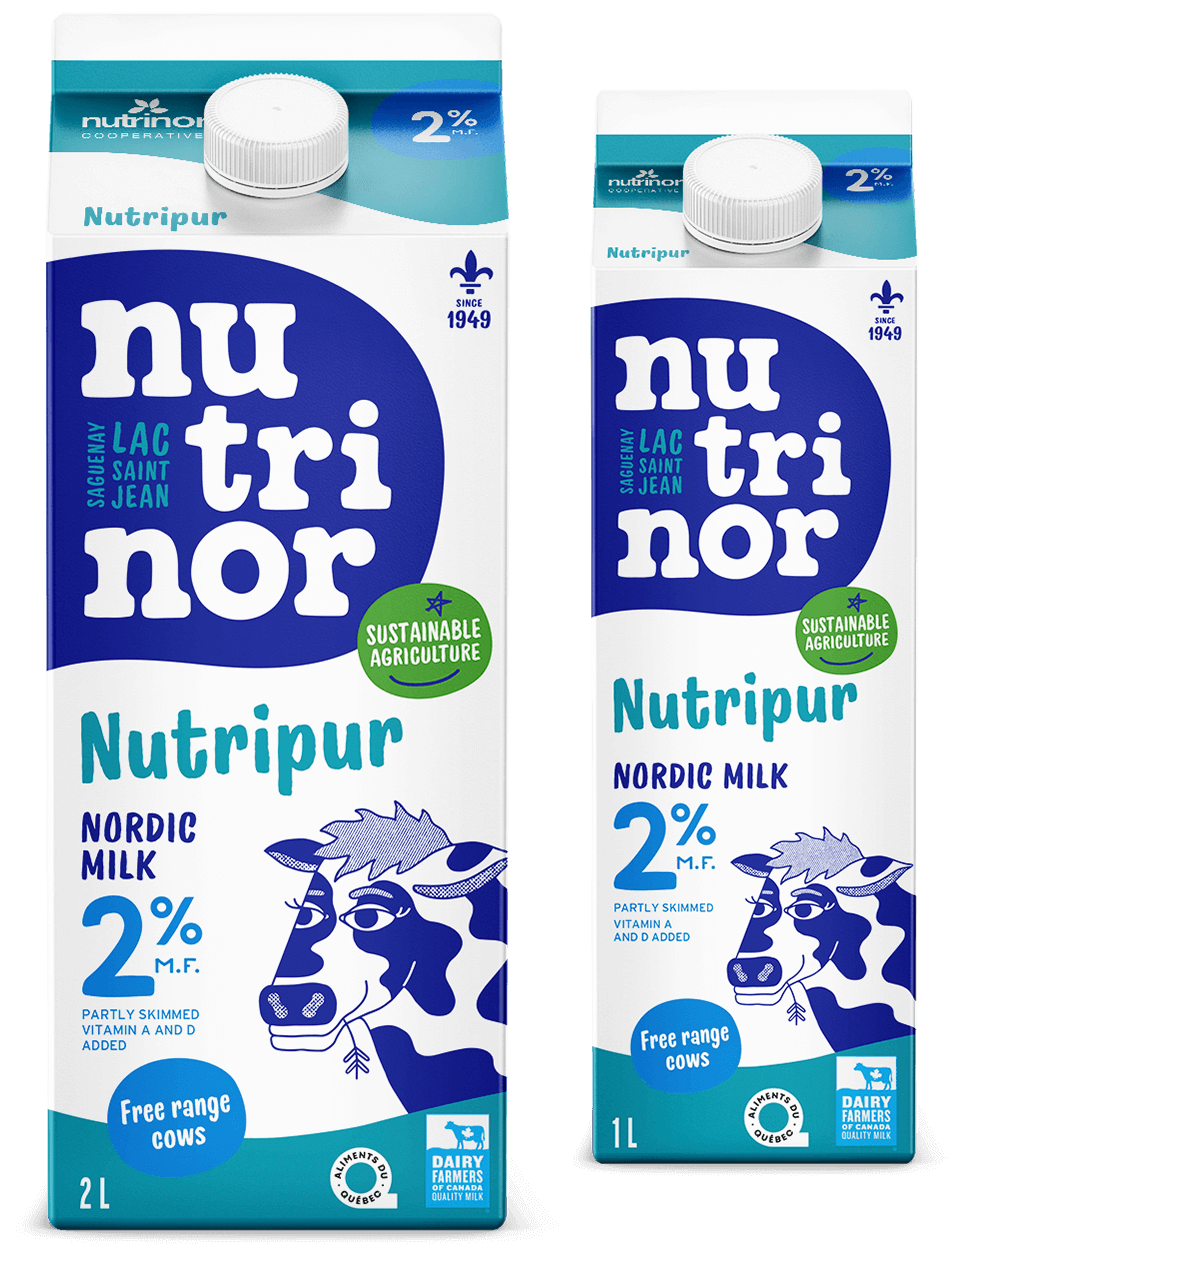 Nutripur milk products